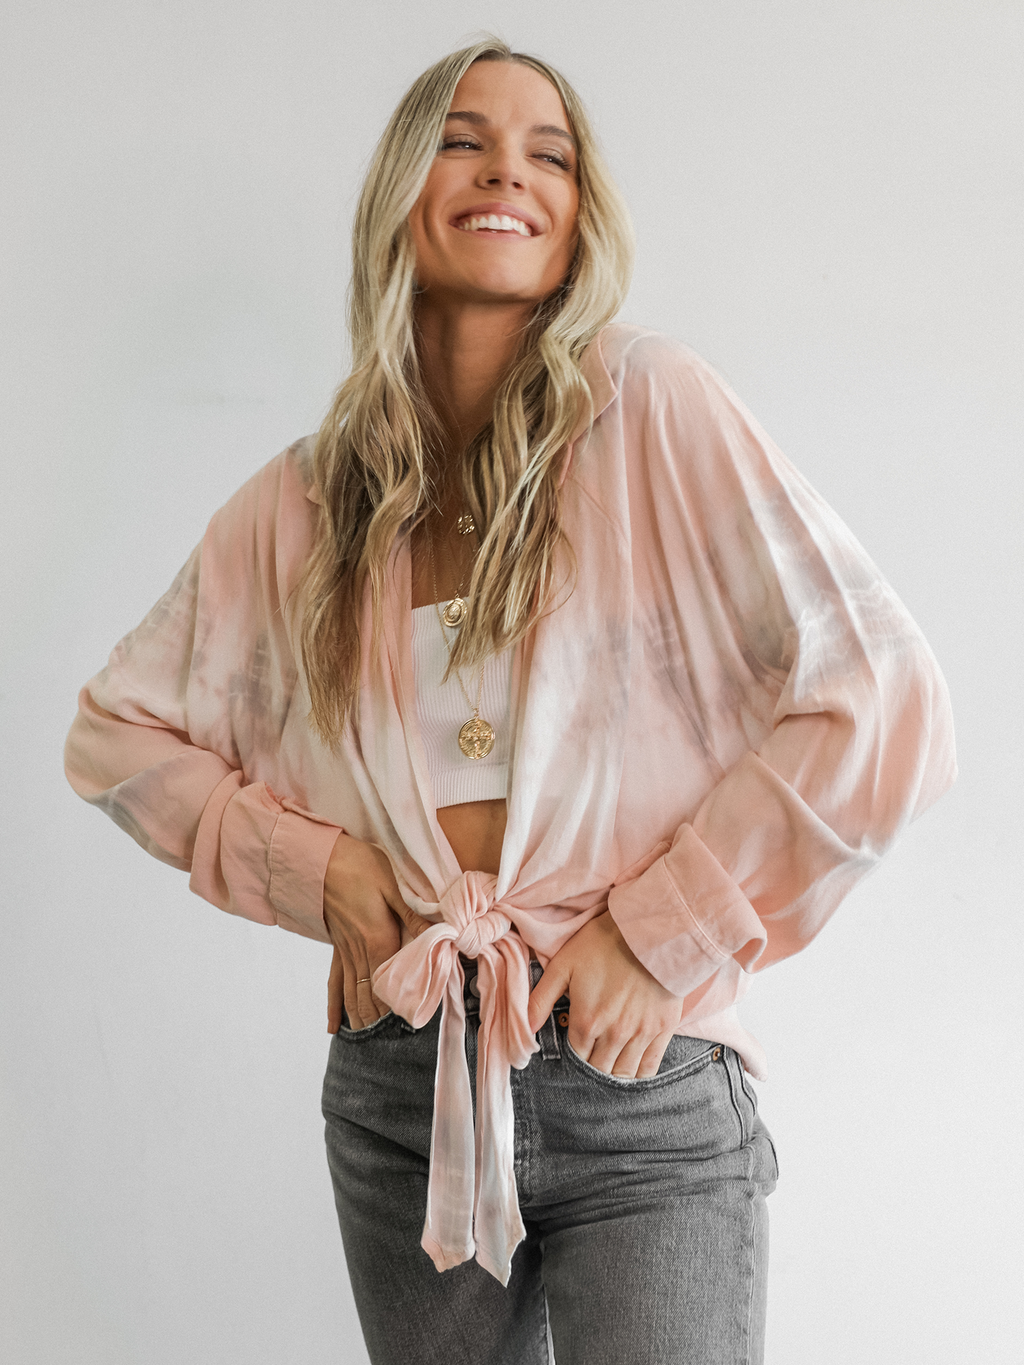 Jewel Front Tie Top - Stitch And Feather